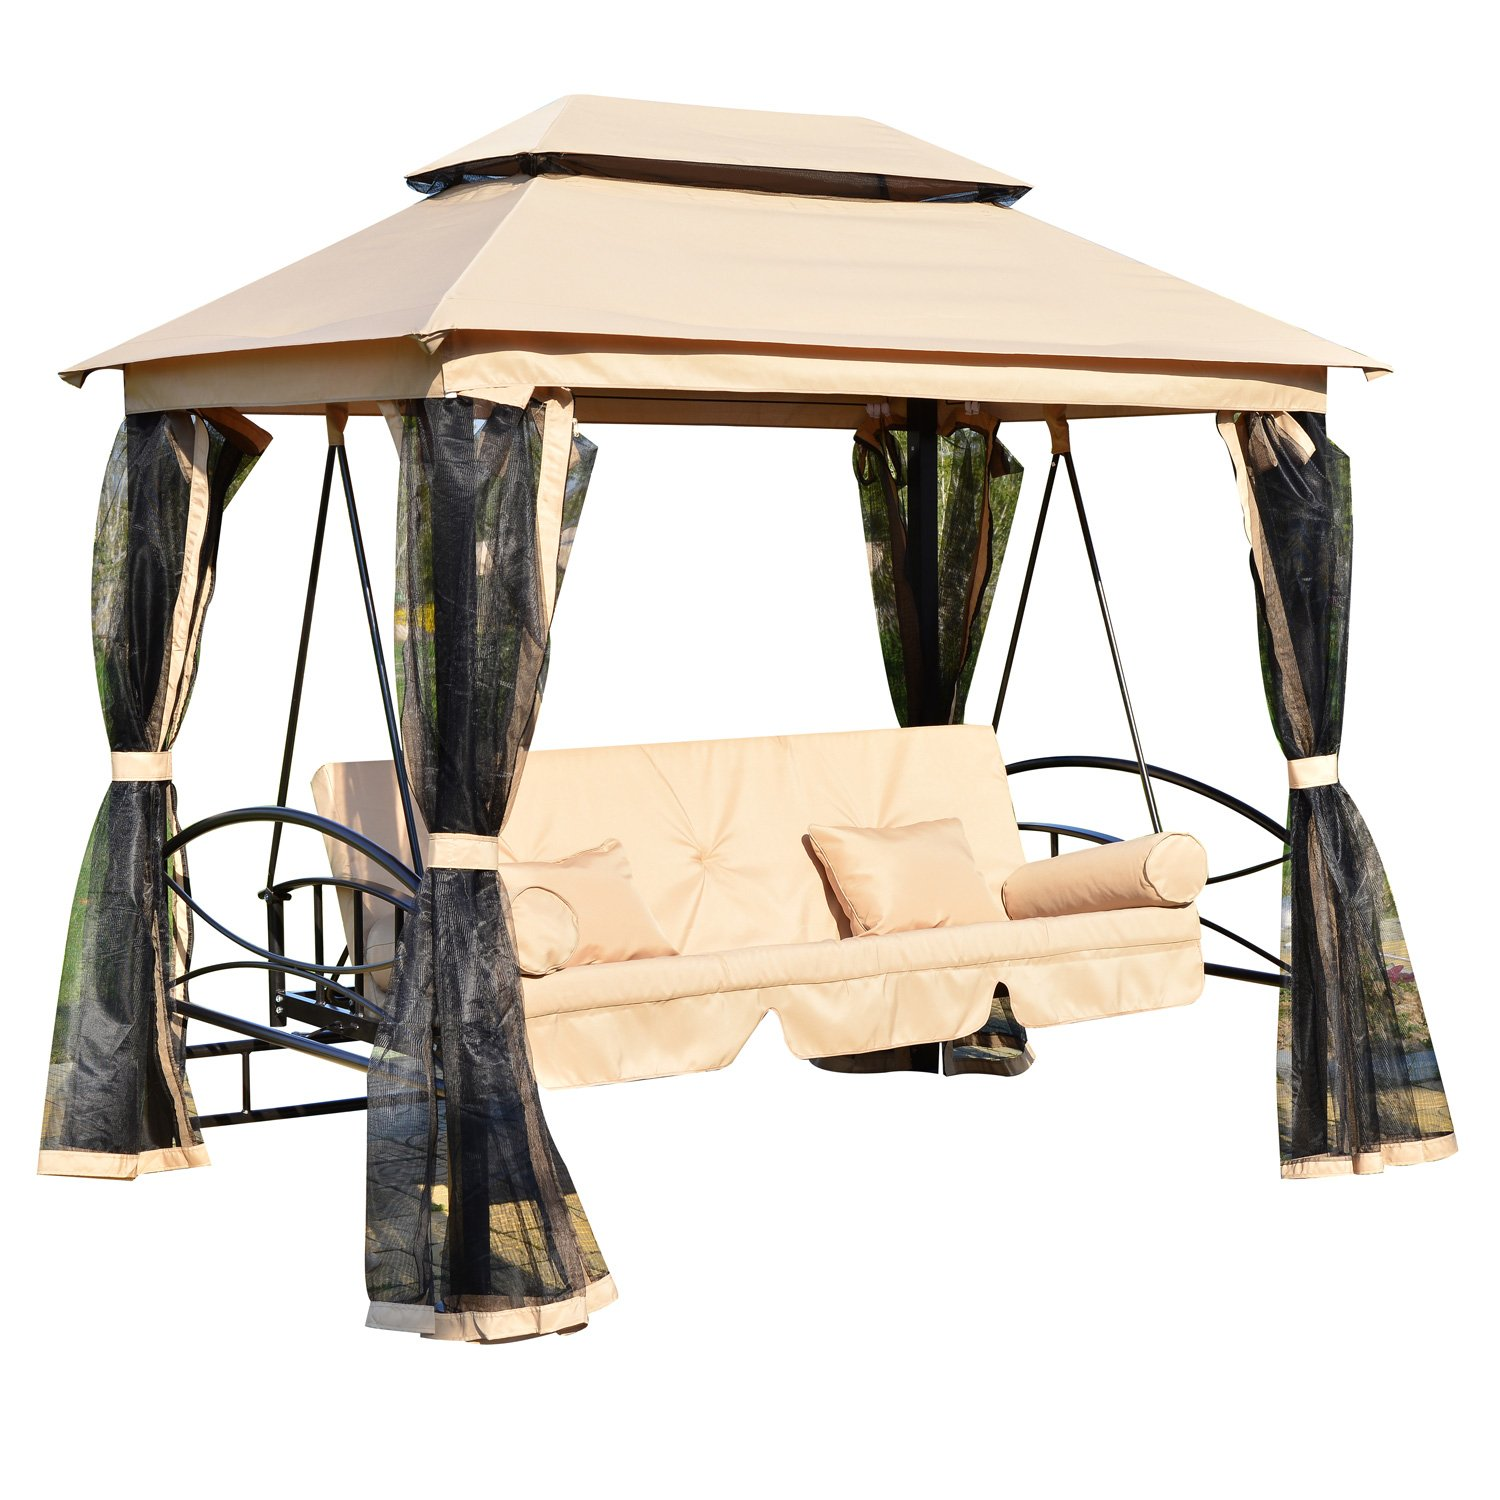 amazoncom outsunny outdoor 3 person patio daybed canopy gazebo swing tan with mesh walls patio lawn u0026 garden